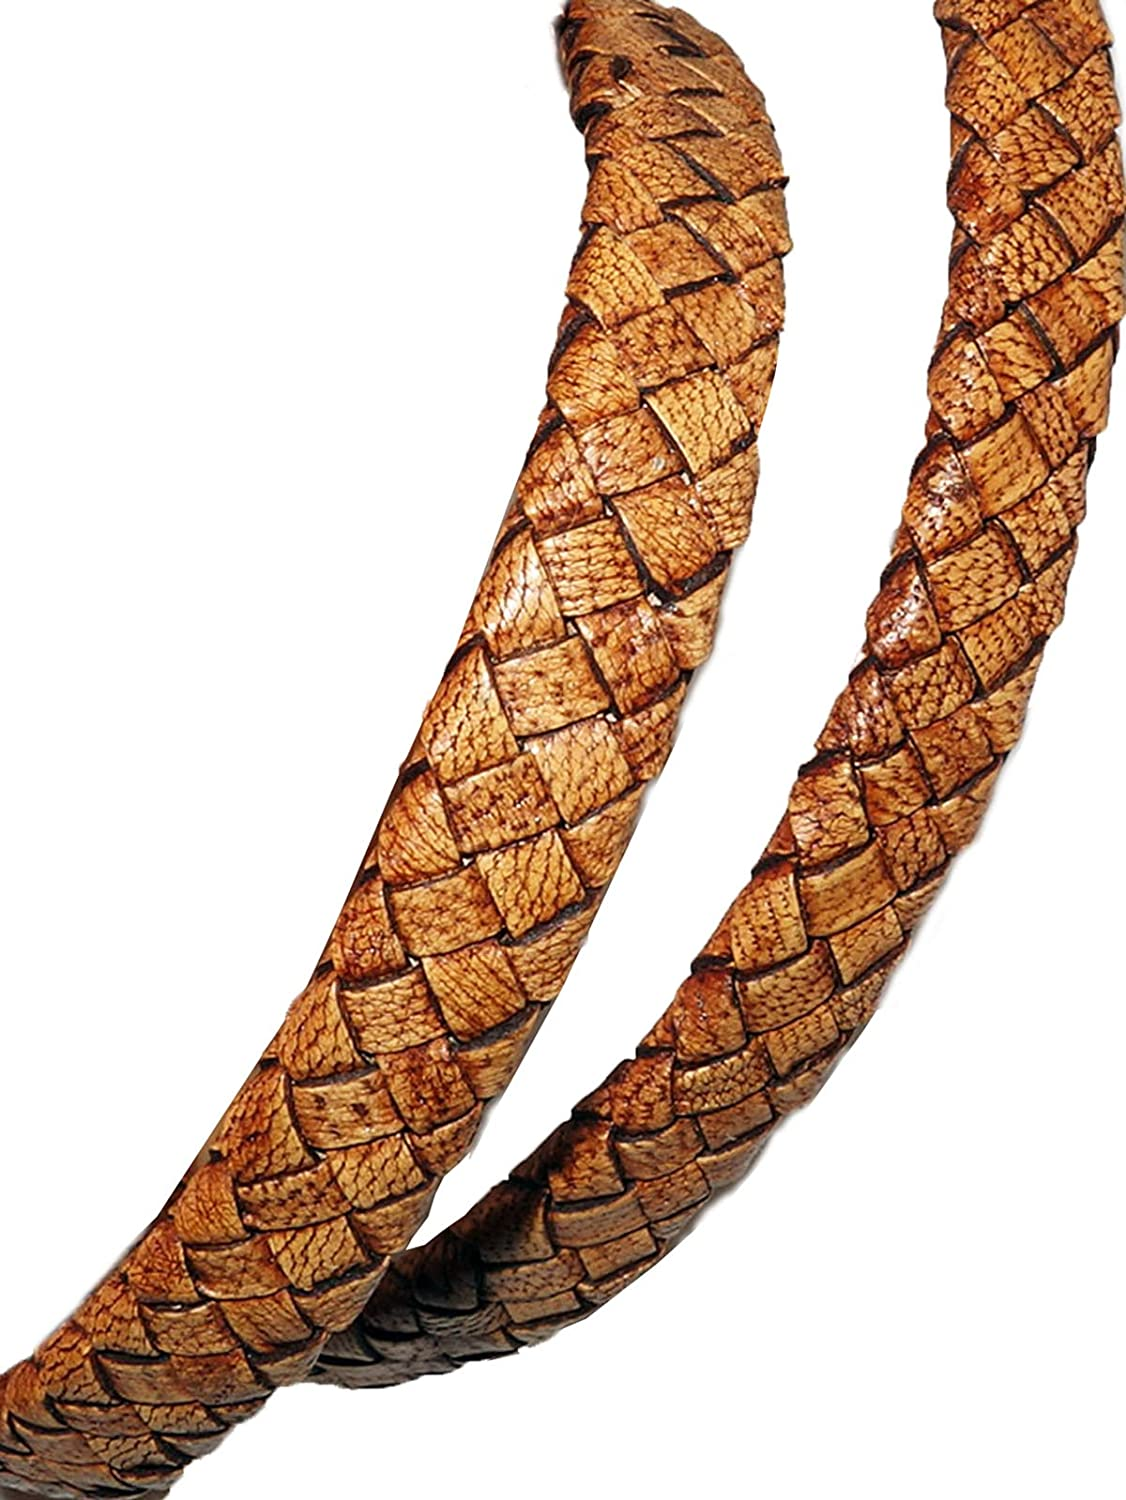 cords craft 10x4mm Flat Braided Genuine Leather Cord, Tan, Color, Piece of 1 Meter for making Bracelet & Jewelry M1-D4